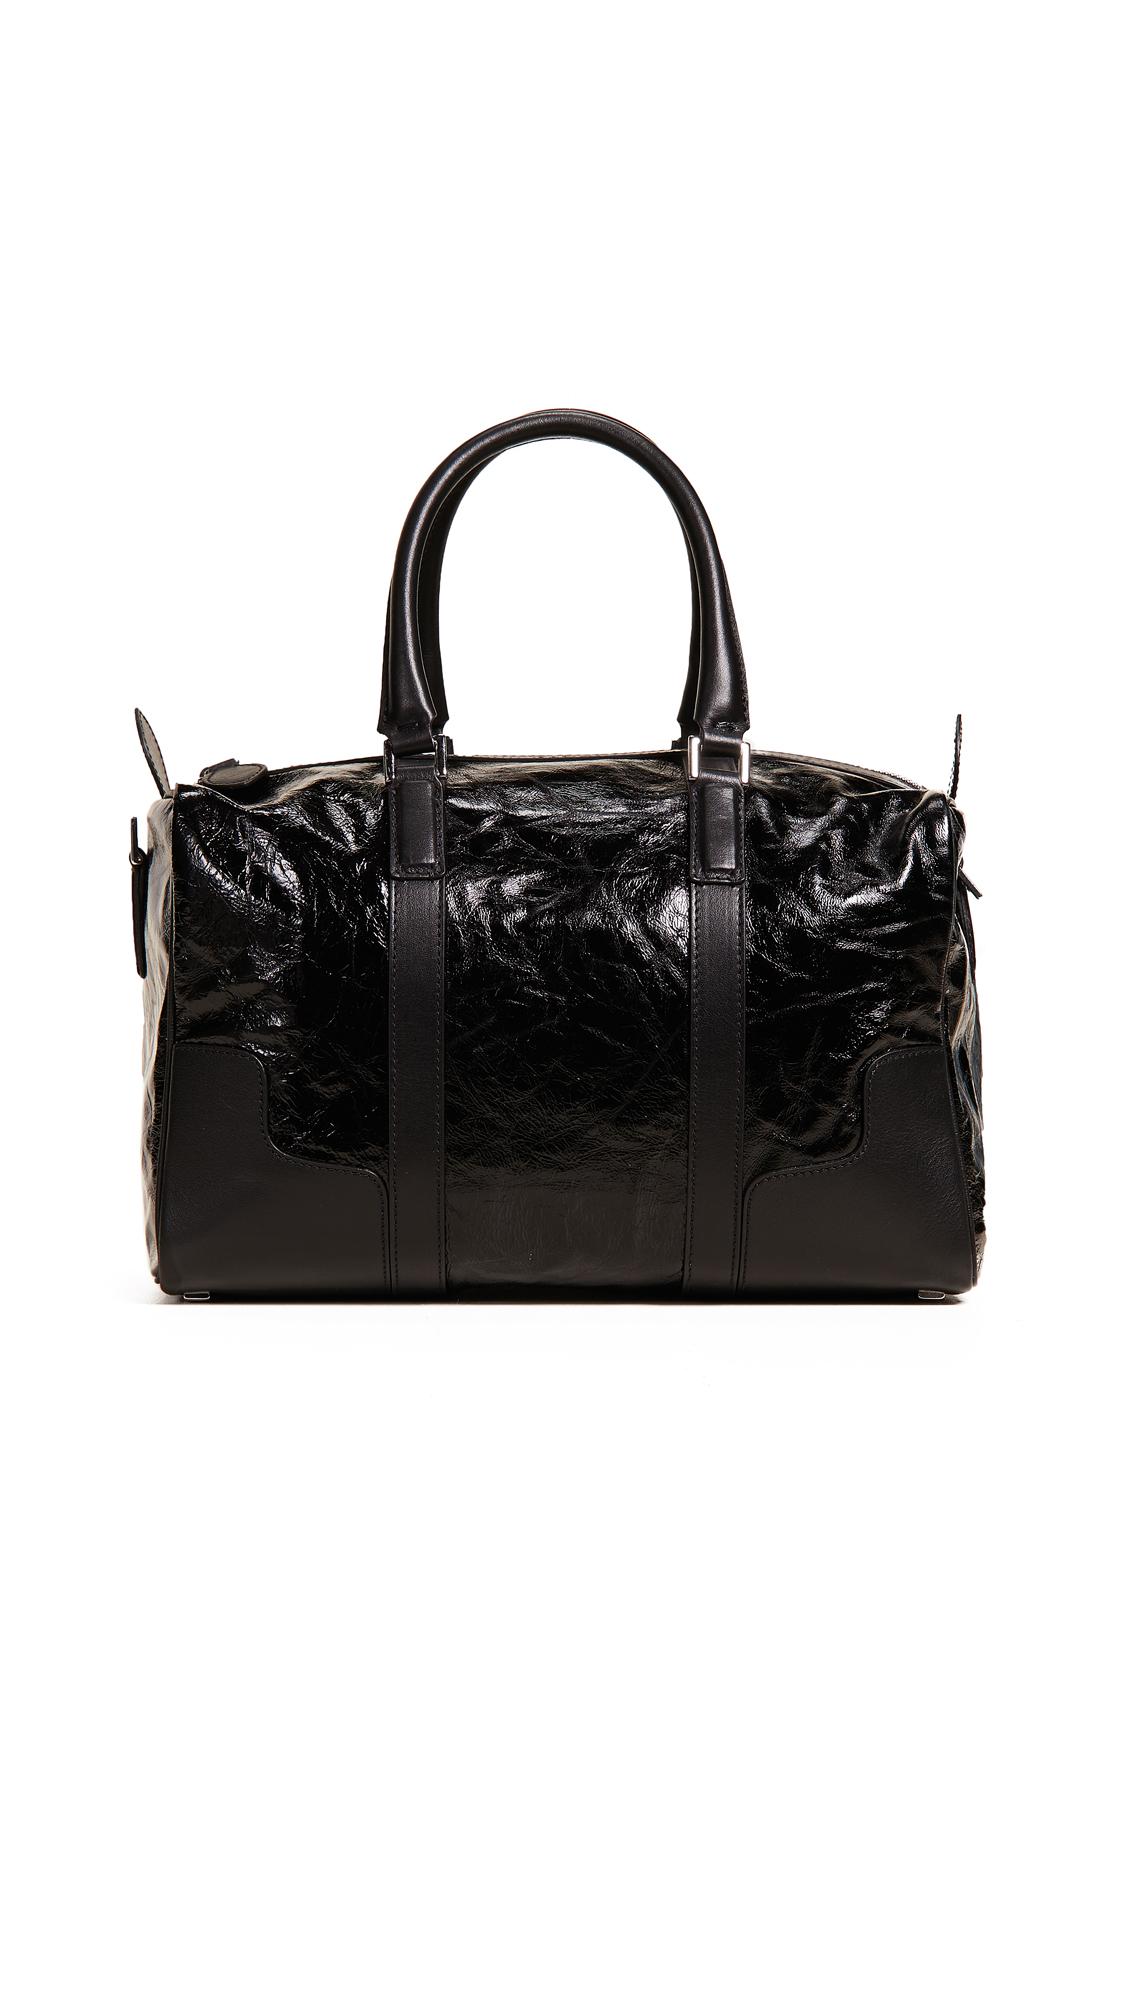 Tibi Mercredi Bag - Black